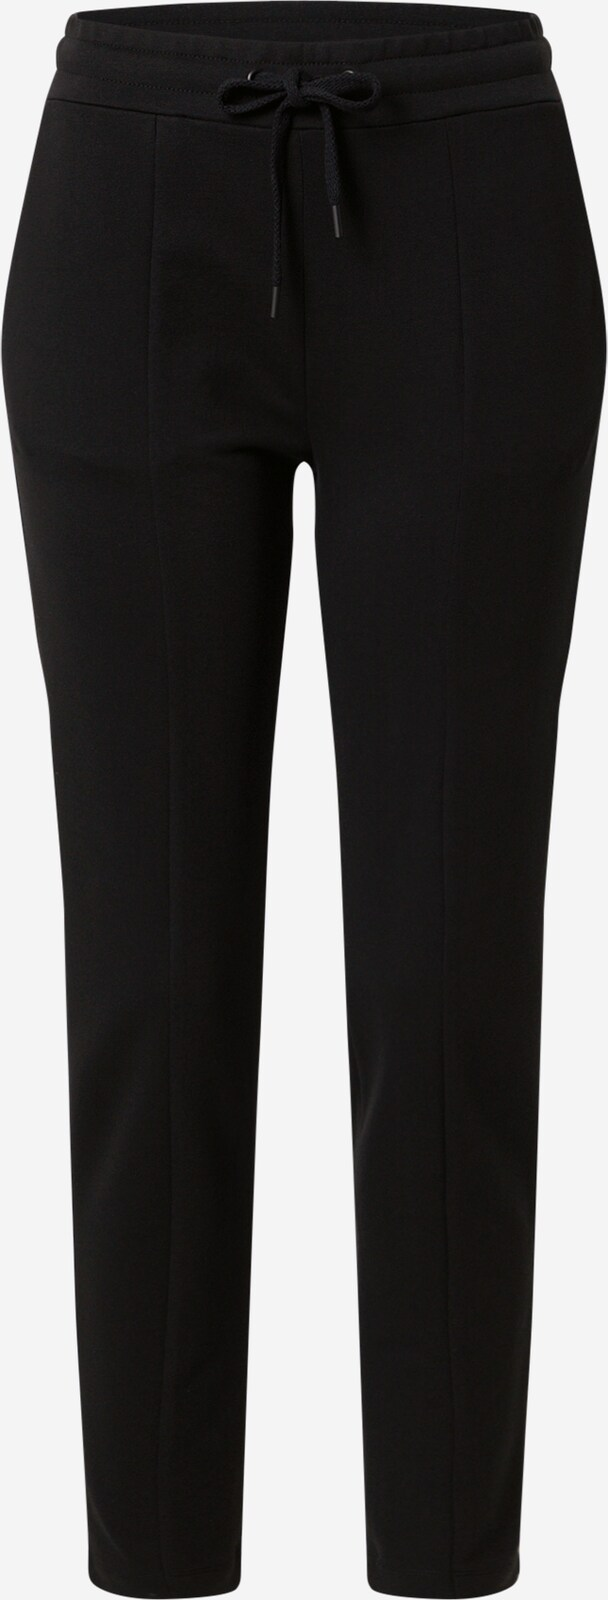 LOVE MOSCHINO | Trousers | W1513 03 E2180C74